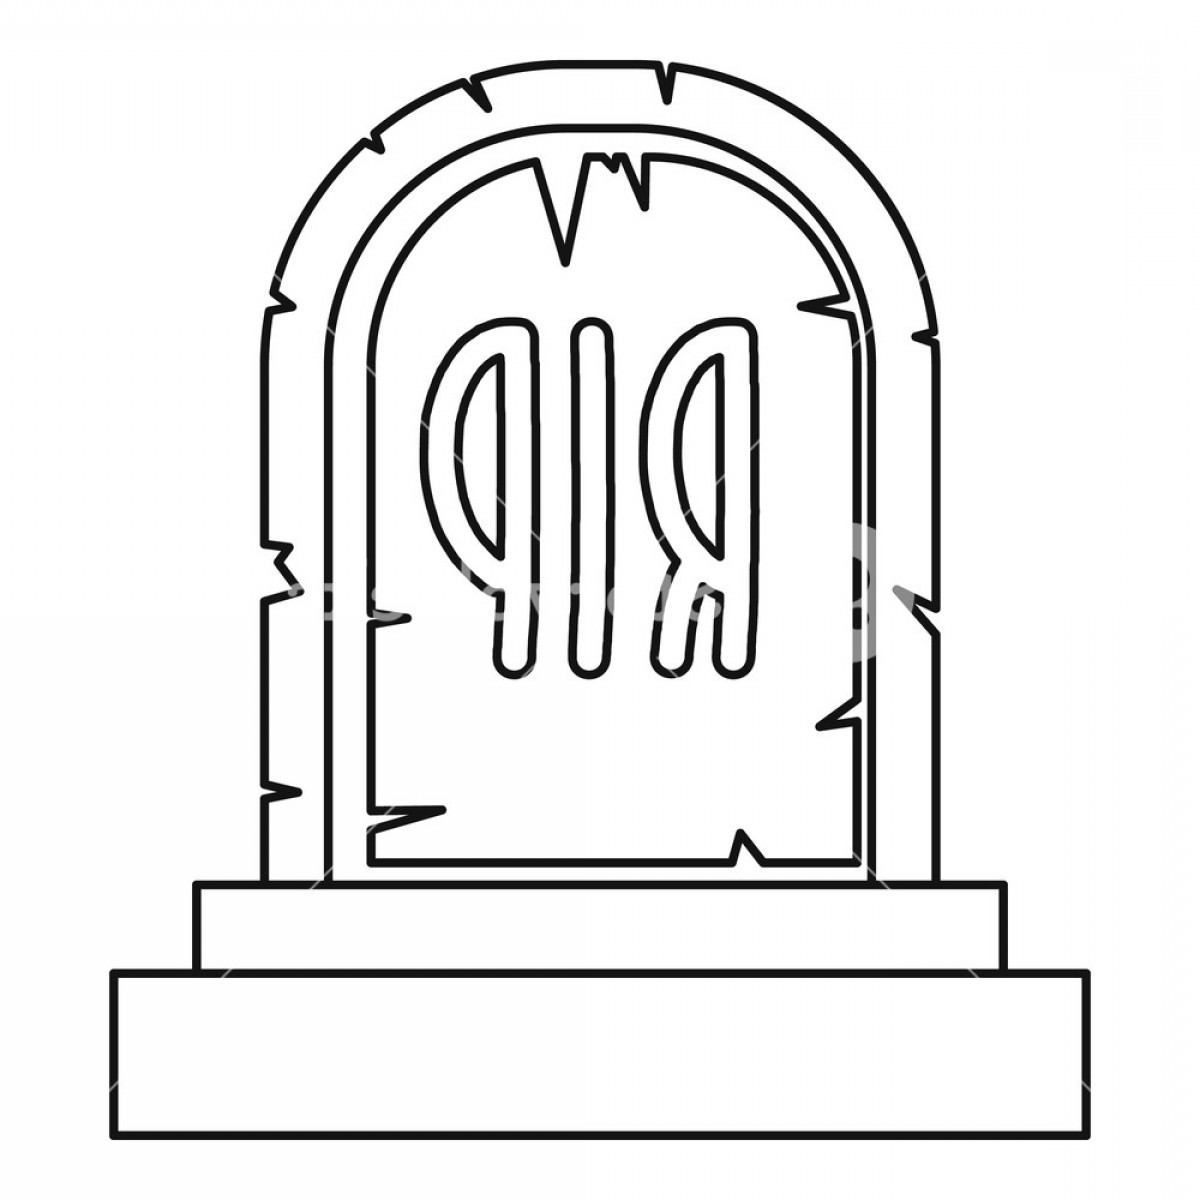 Gravestone Outline Vector: Tombstone Icon Outline Illustration Of Tombstone Vector Icon For Web Hxwzioxxqjixtyd